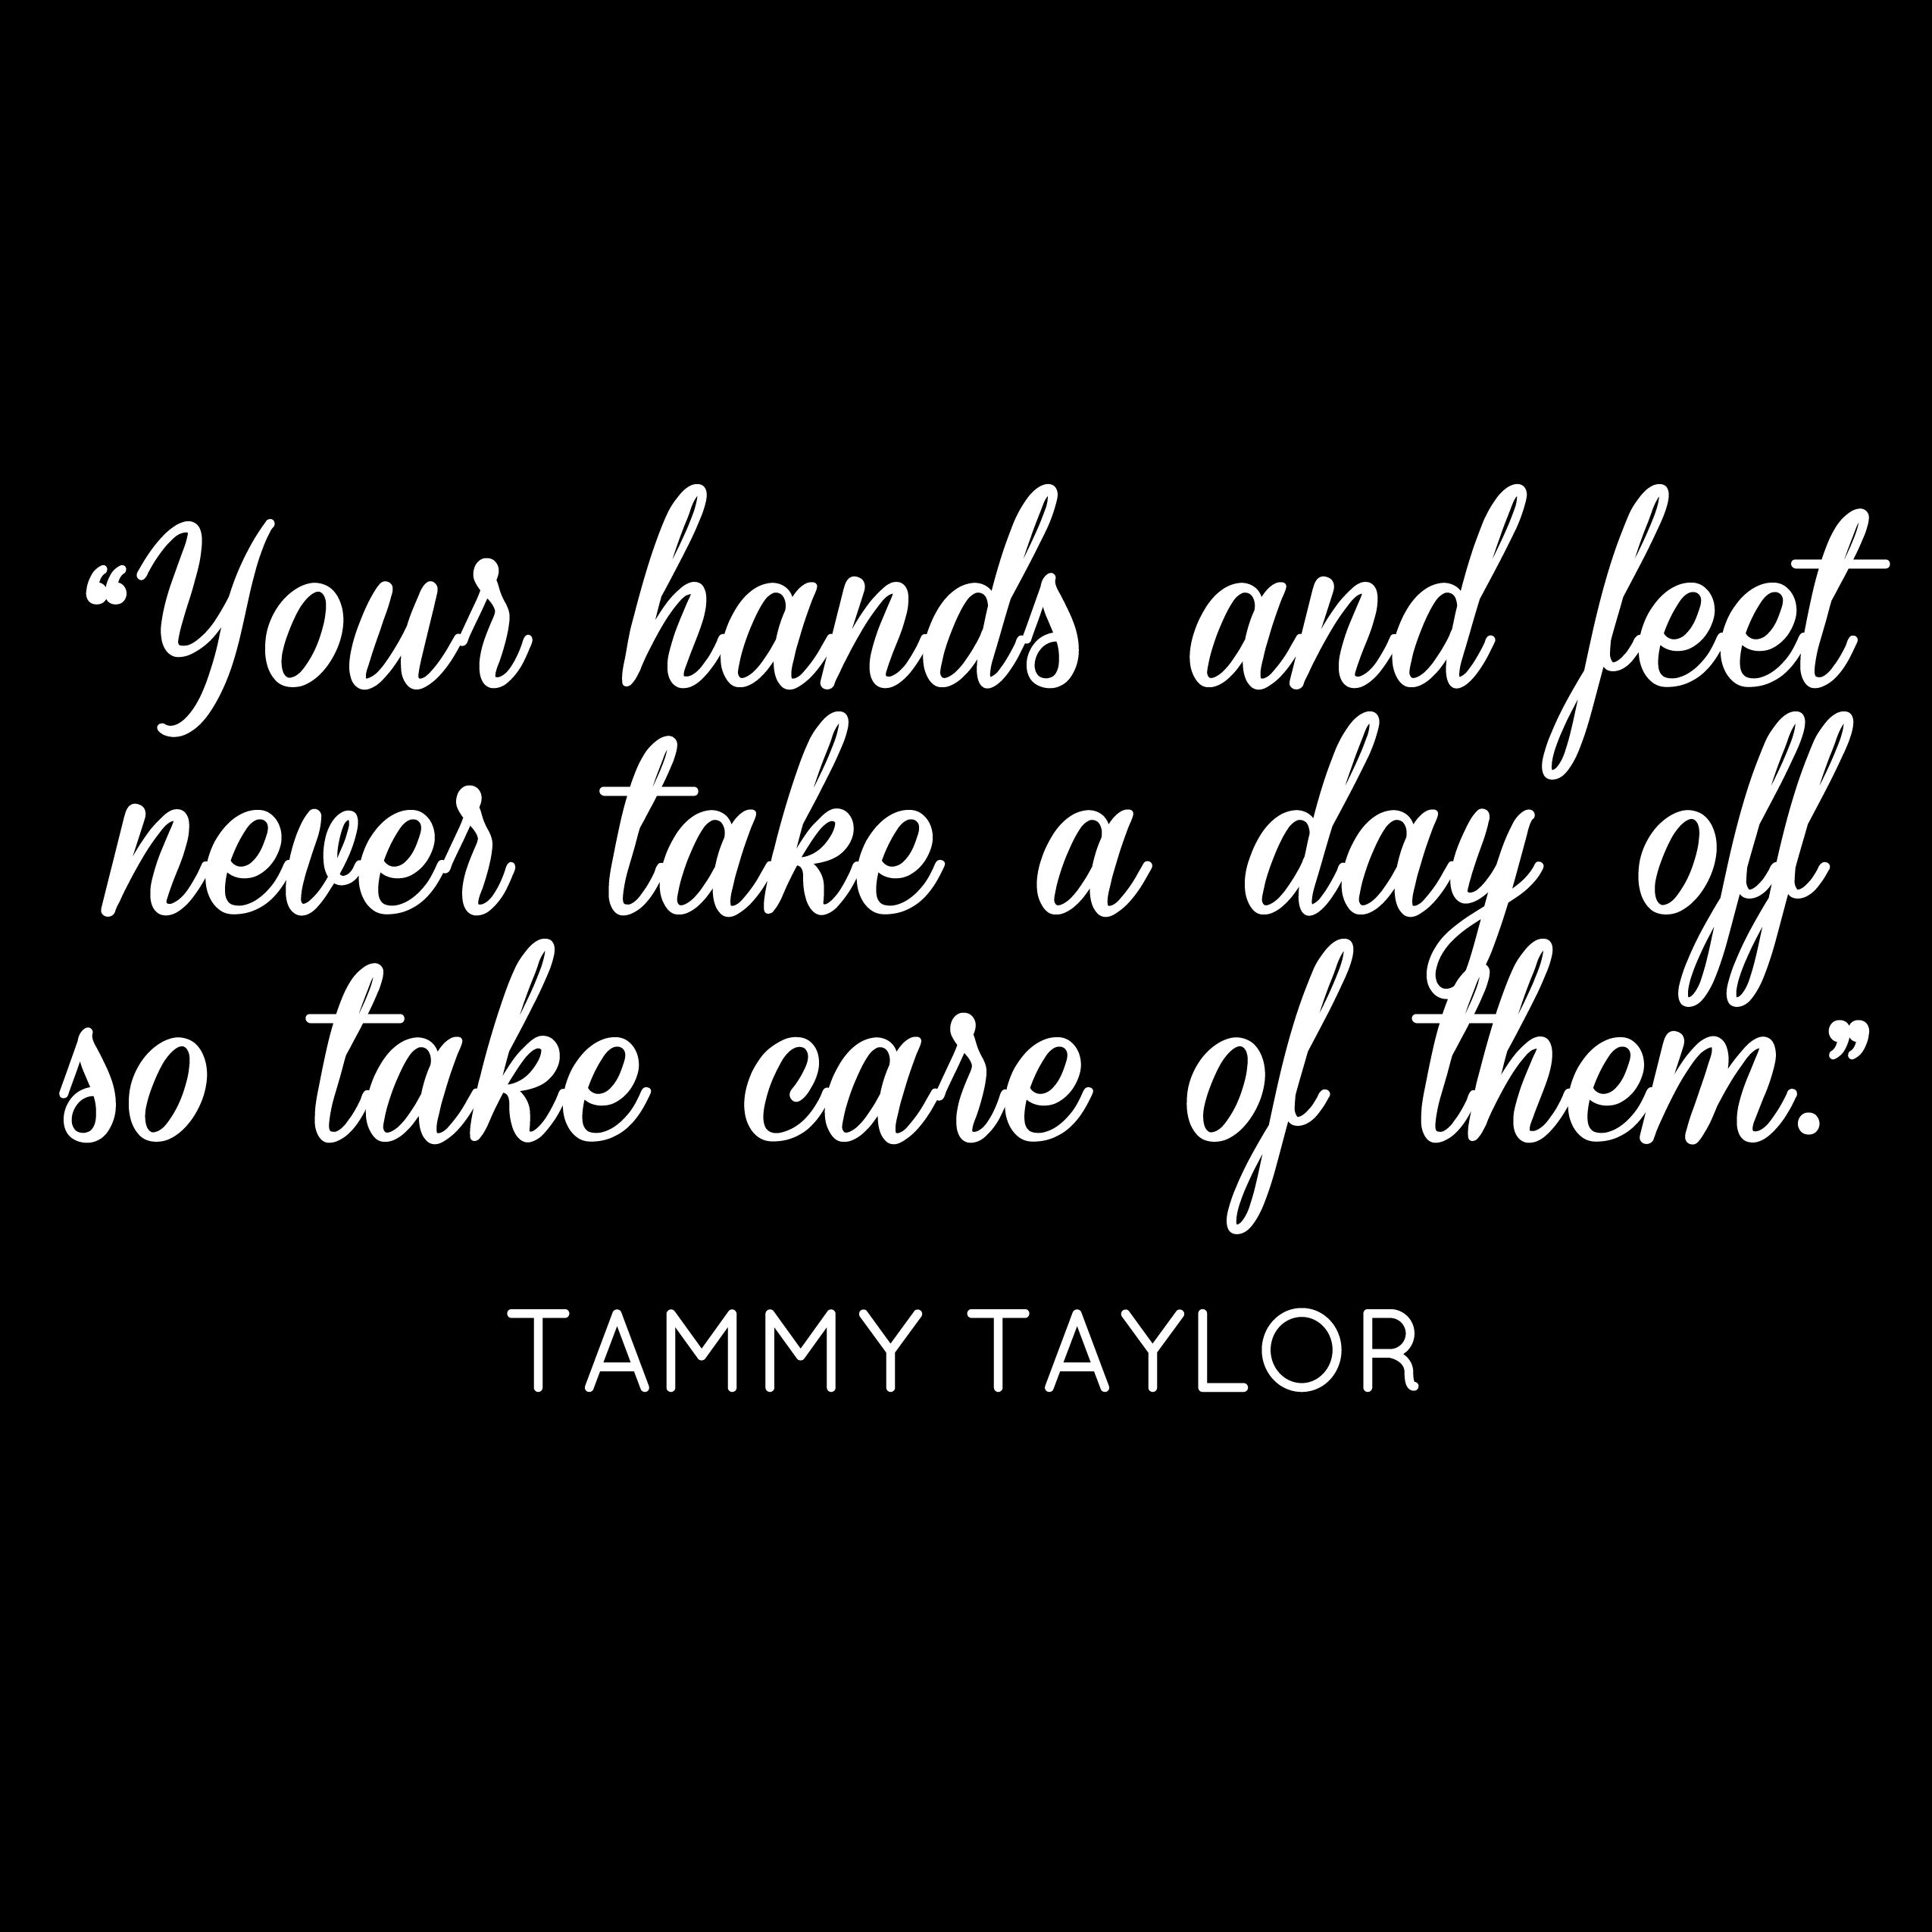 Tammy taylor nail quotes for Salon quotes of the day